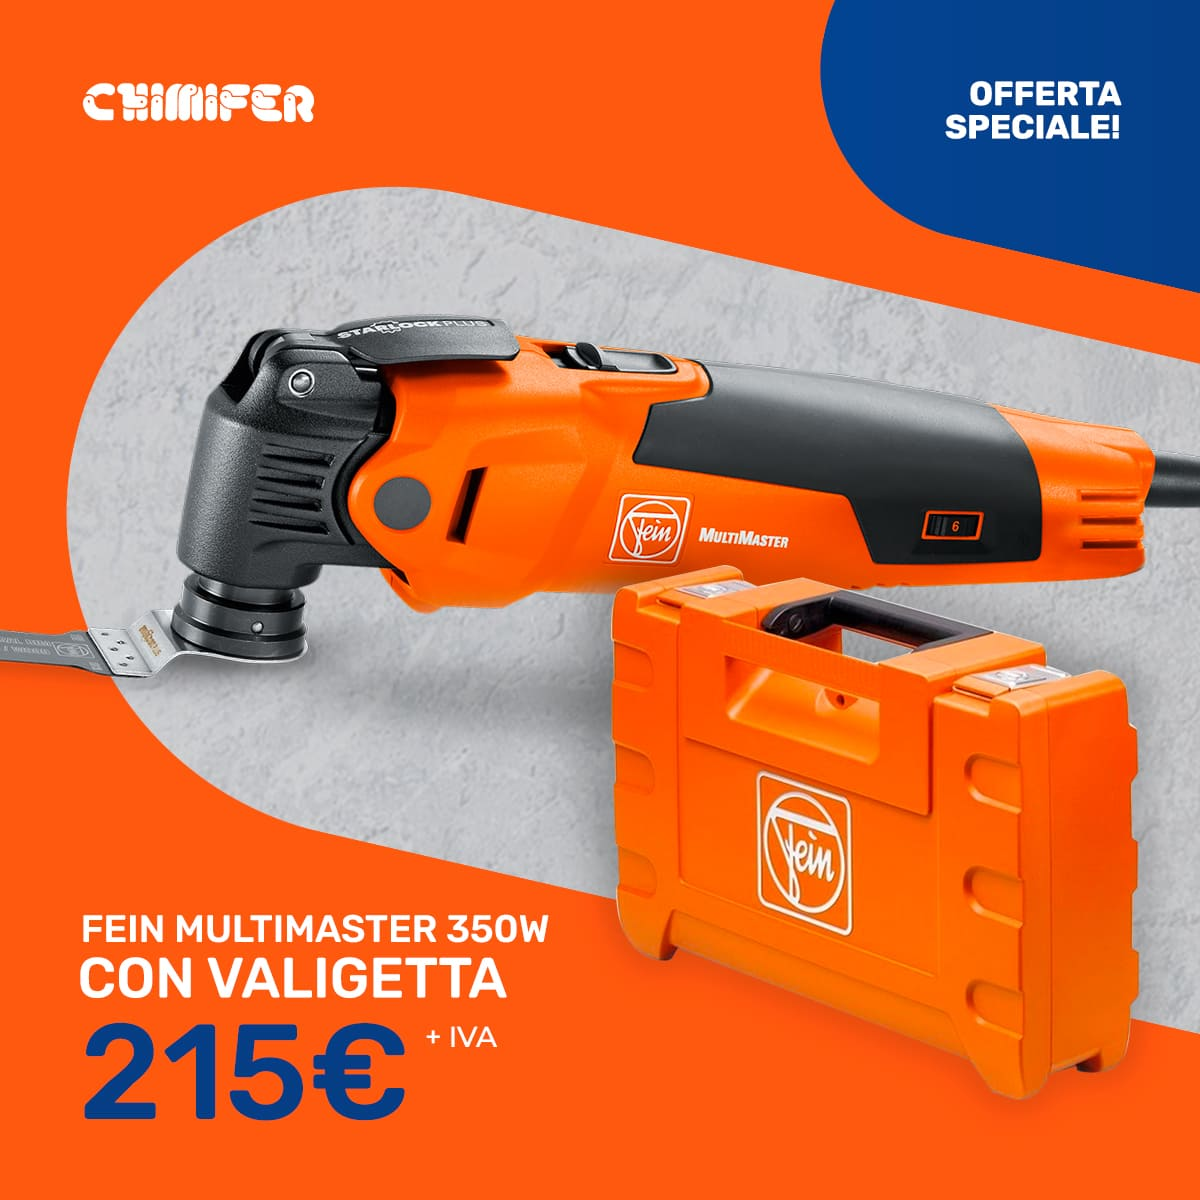 Fein-multimaster-valigetta-offerta-chimifer